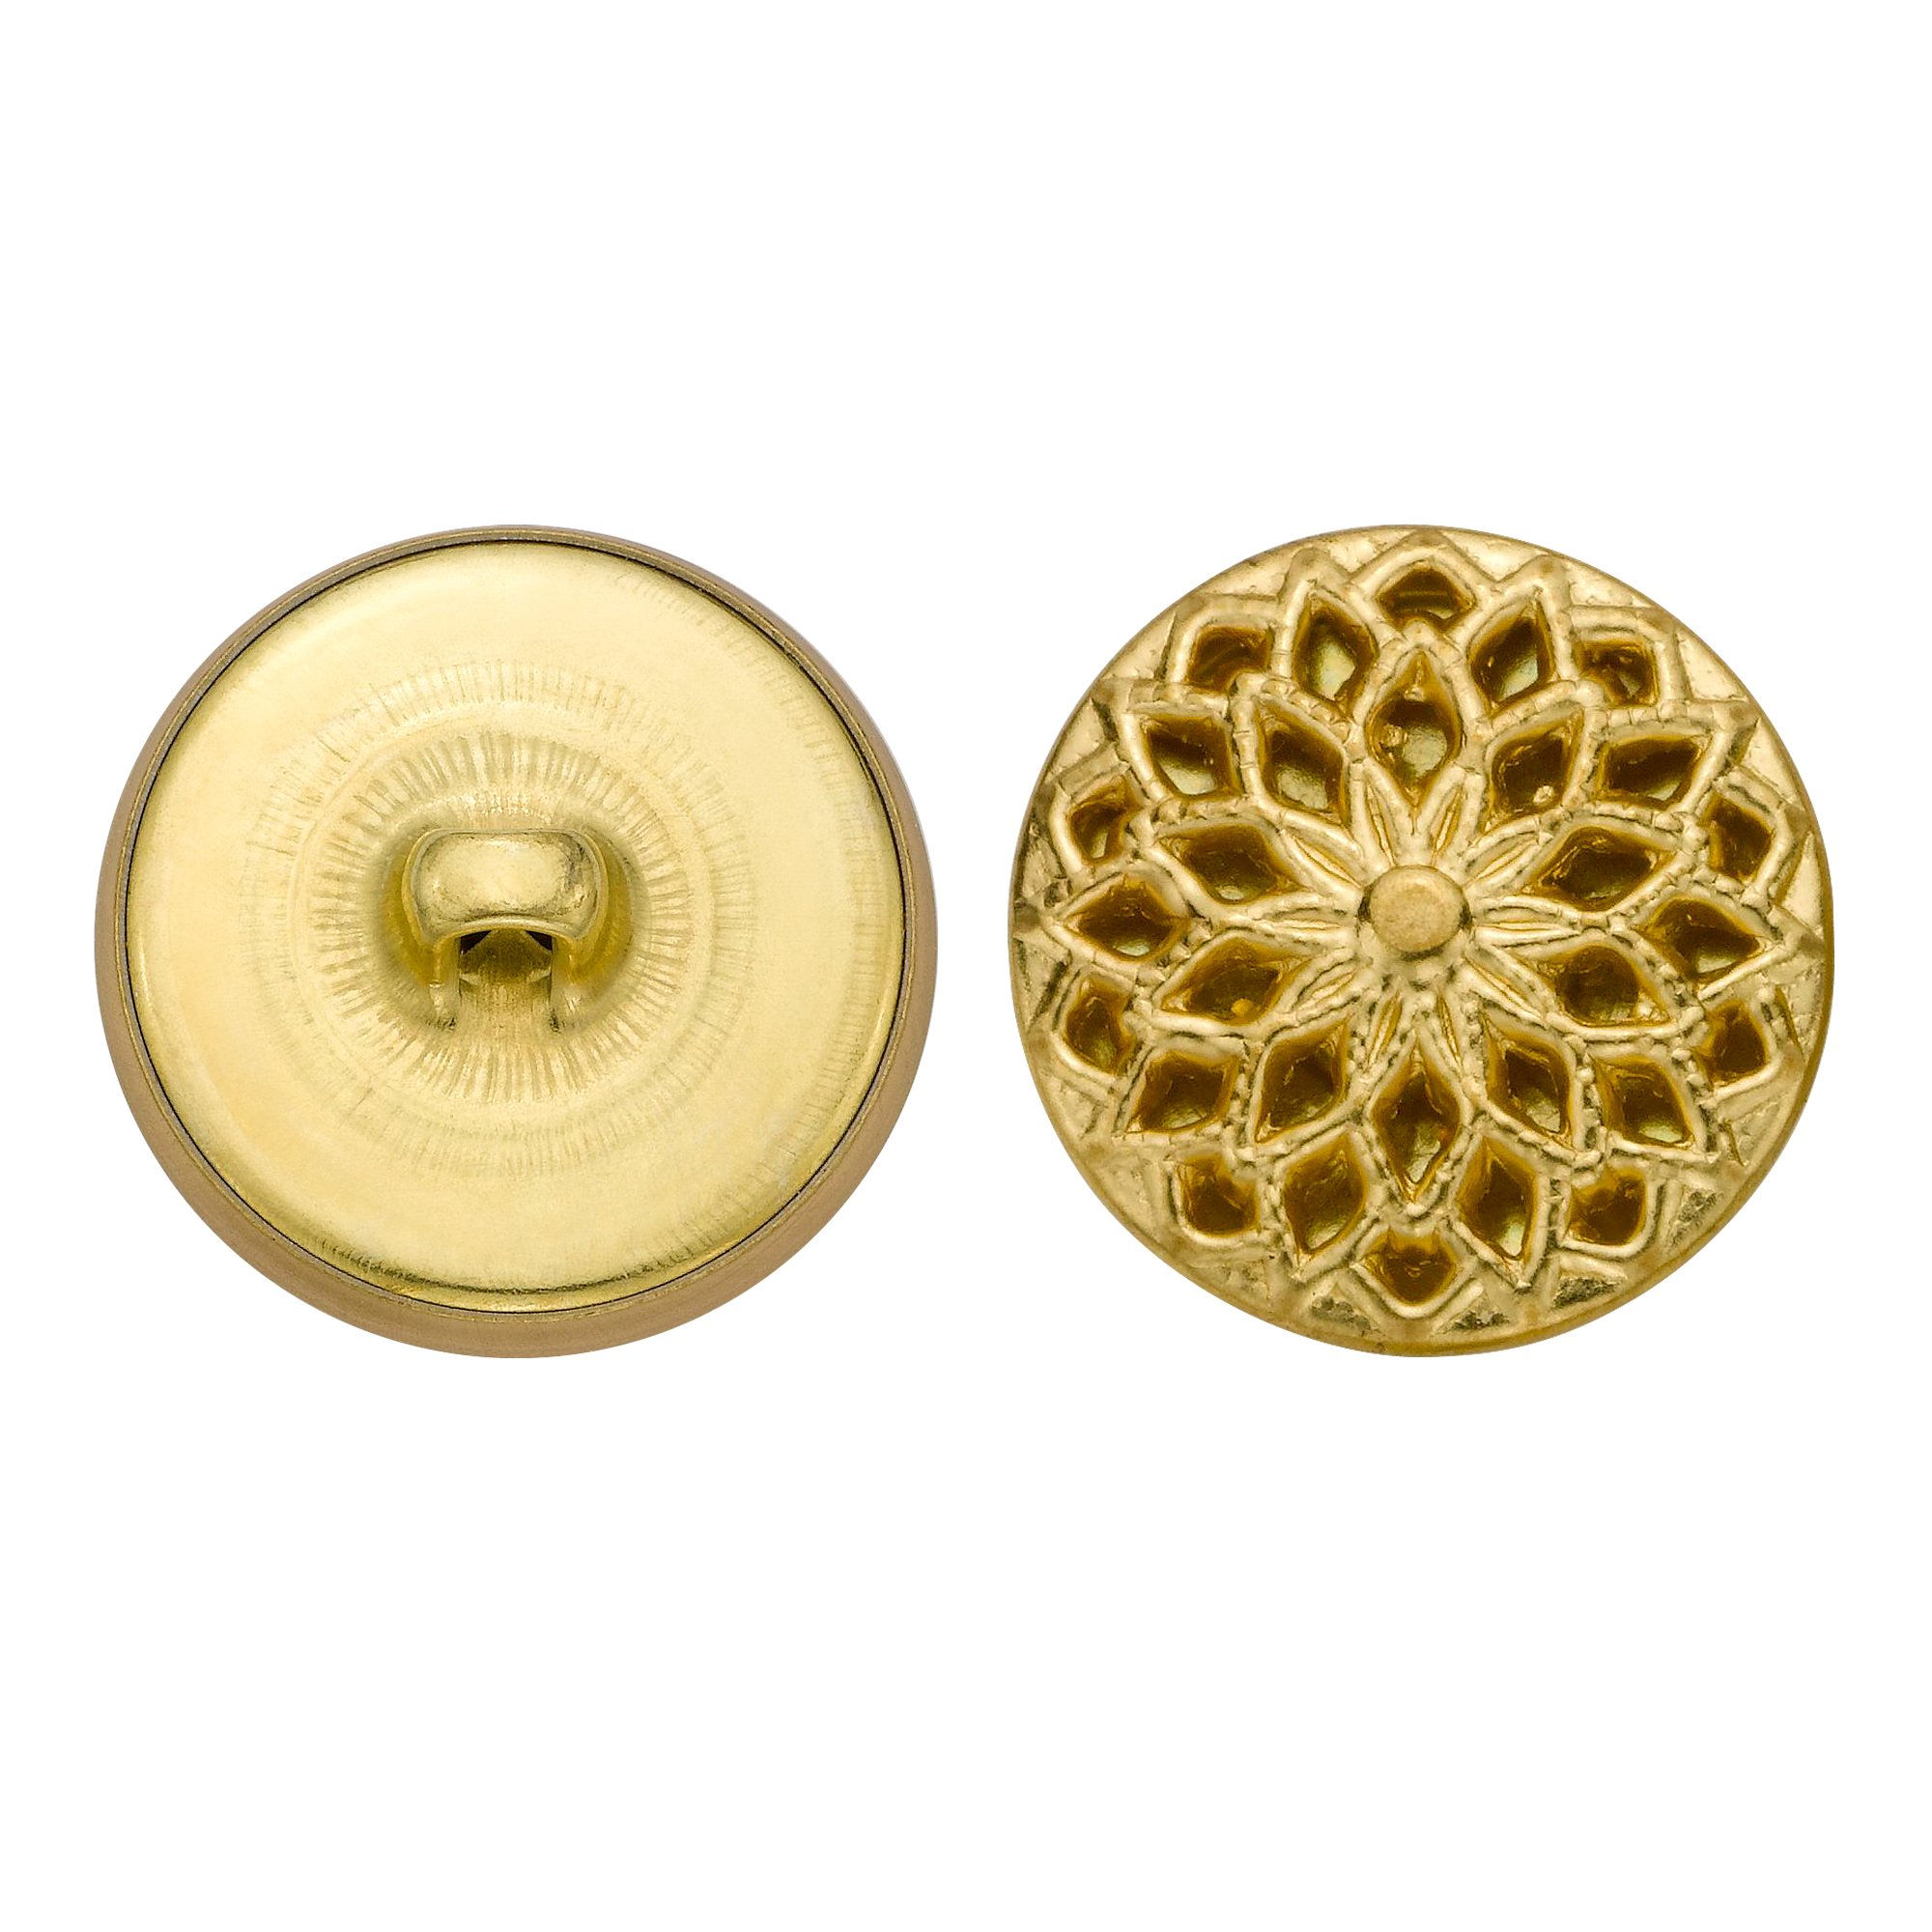 C&C Metal Products 5353 Filigree Metal Button, Size 36 Ligne, Gold, 36-Pack